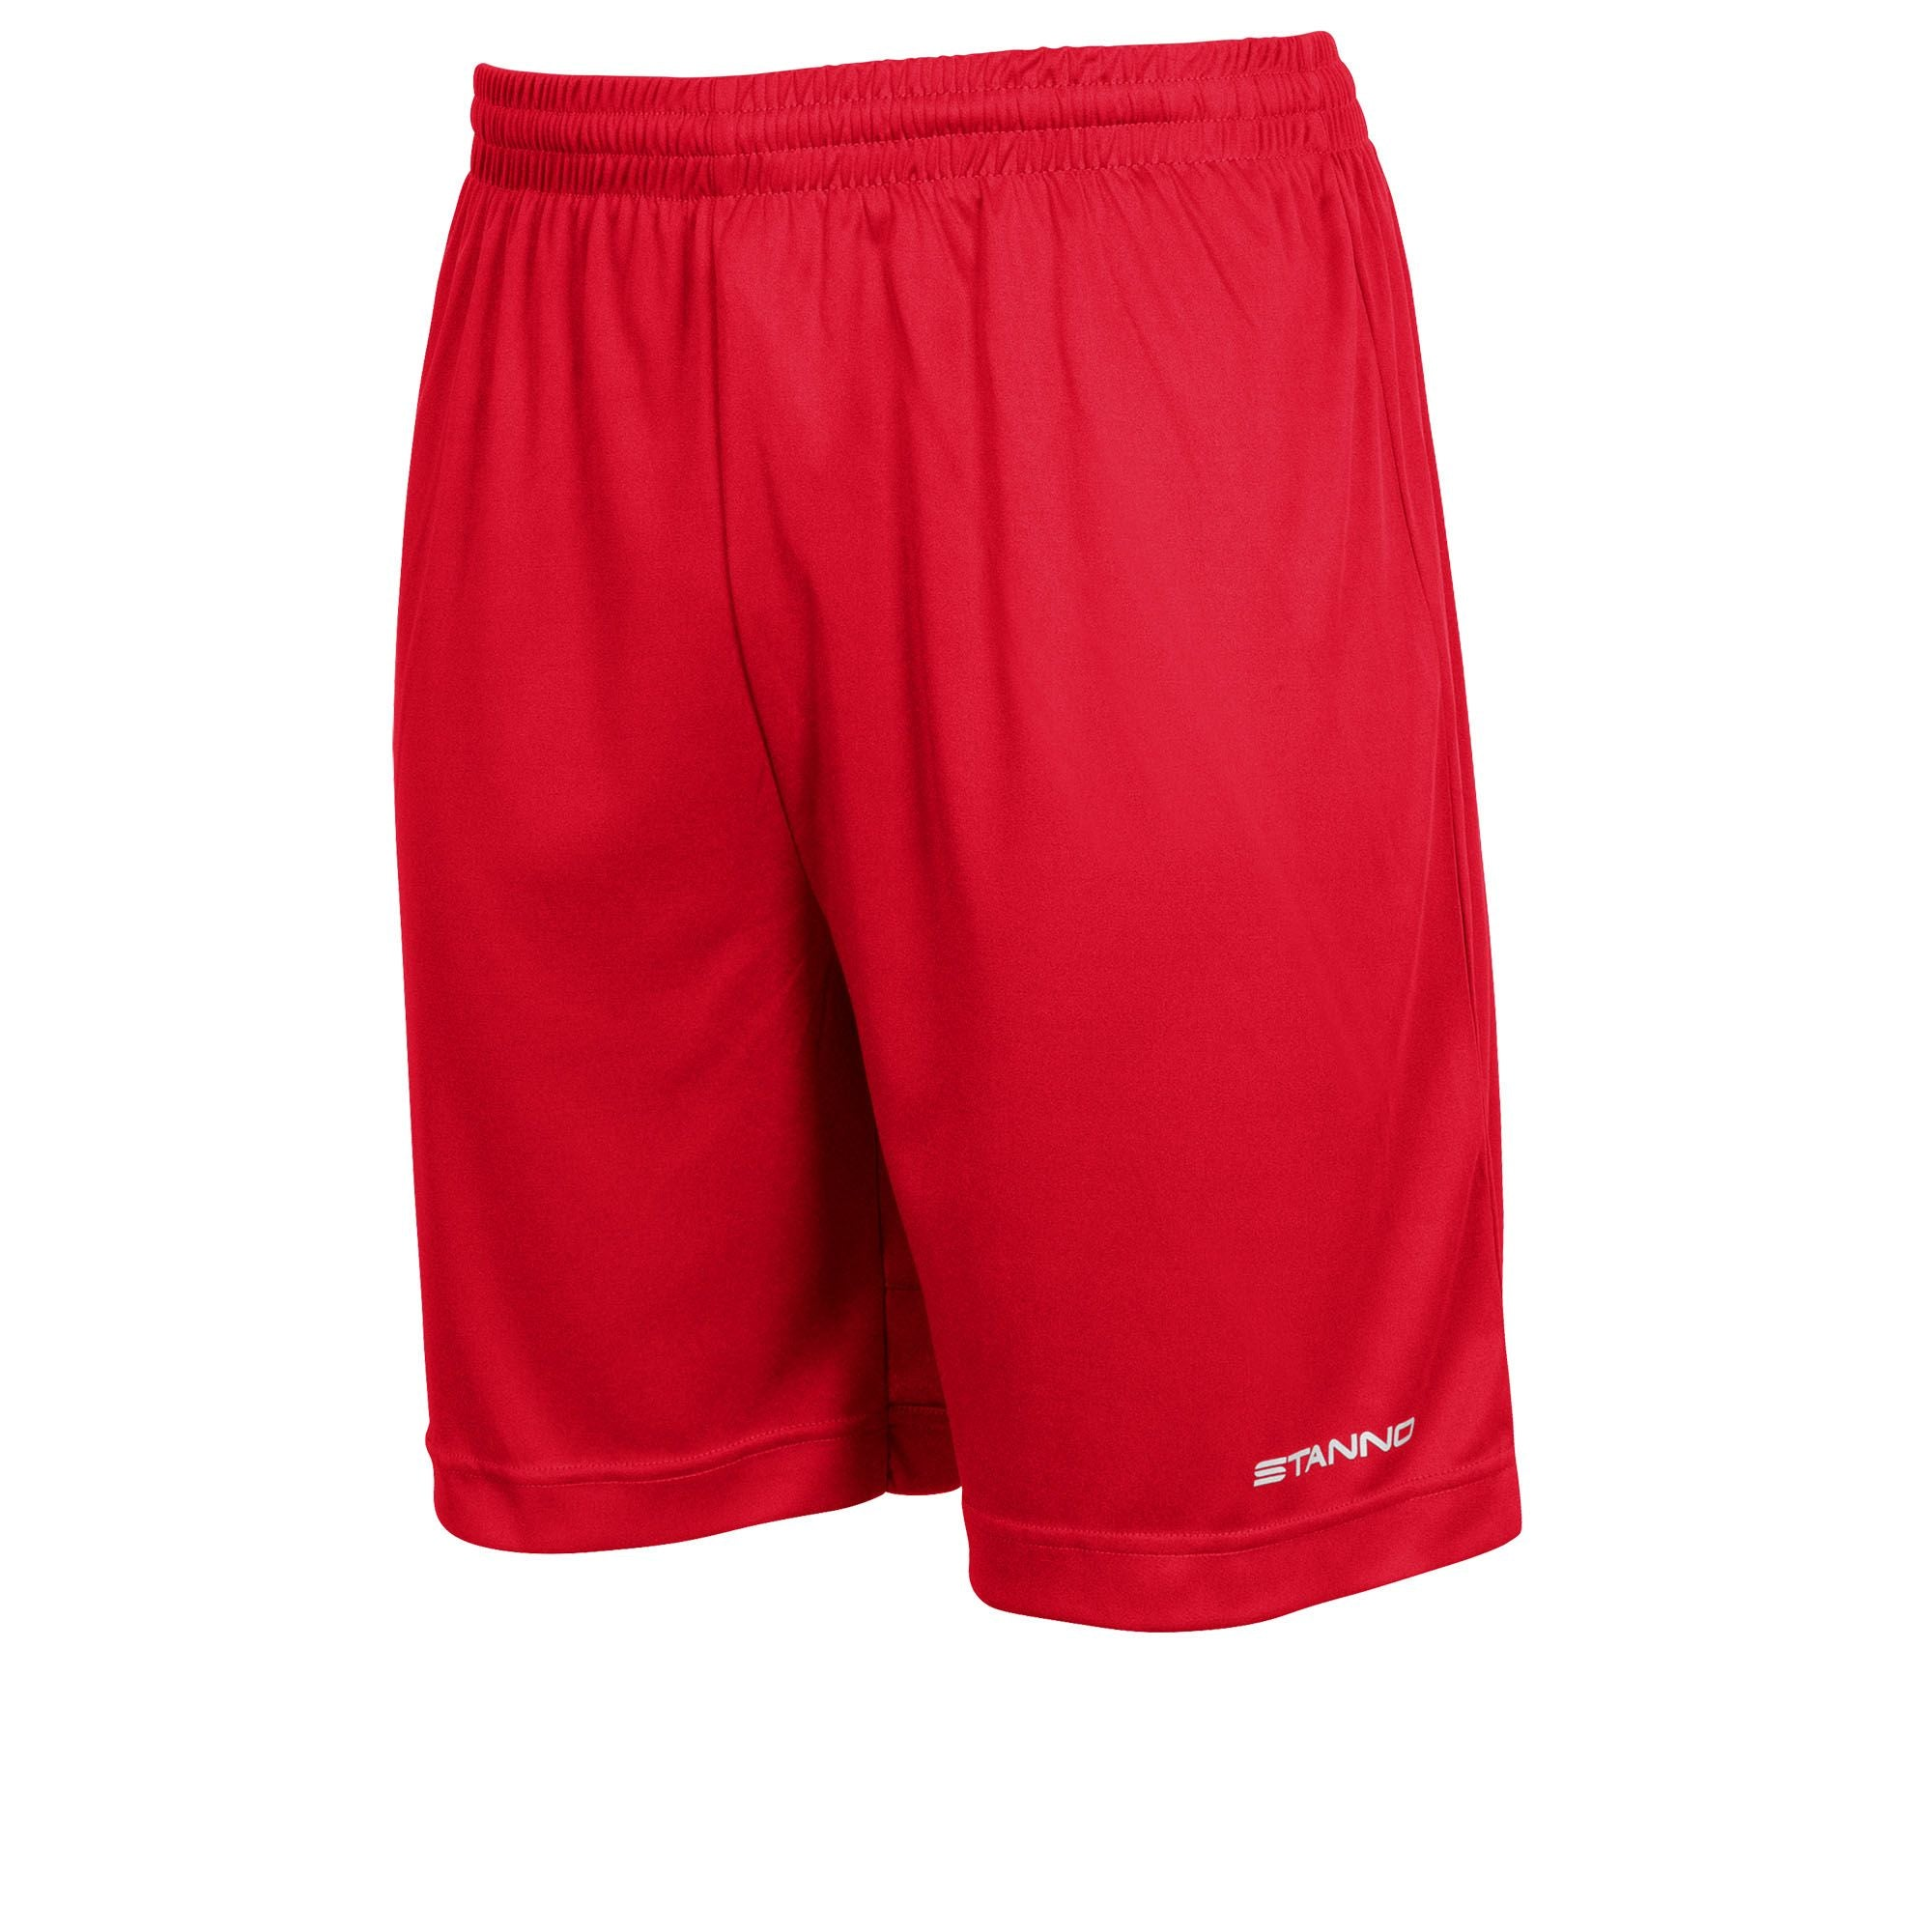 Stanno Field shorts in red